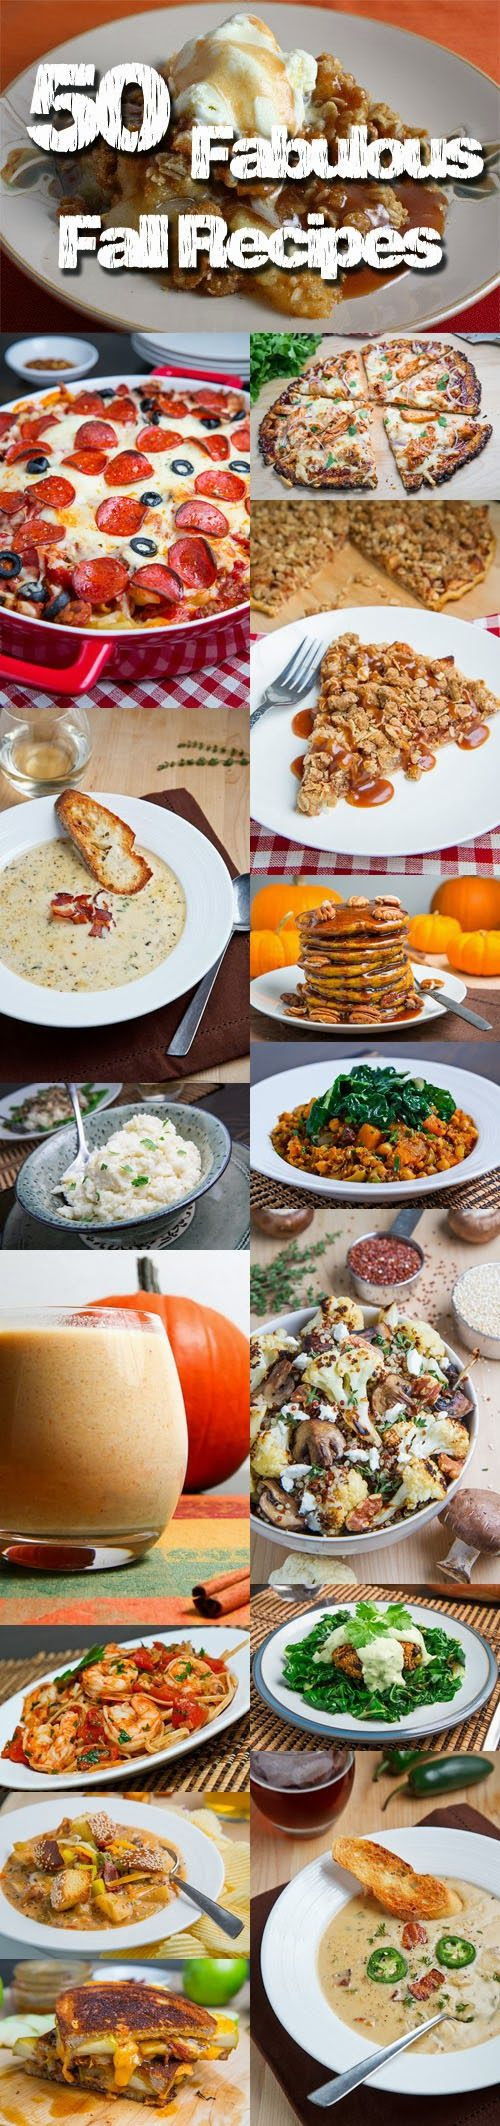 Healthy Fall Dinner Recipes  75 best images about Autumn on Pinterest